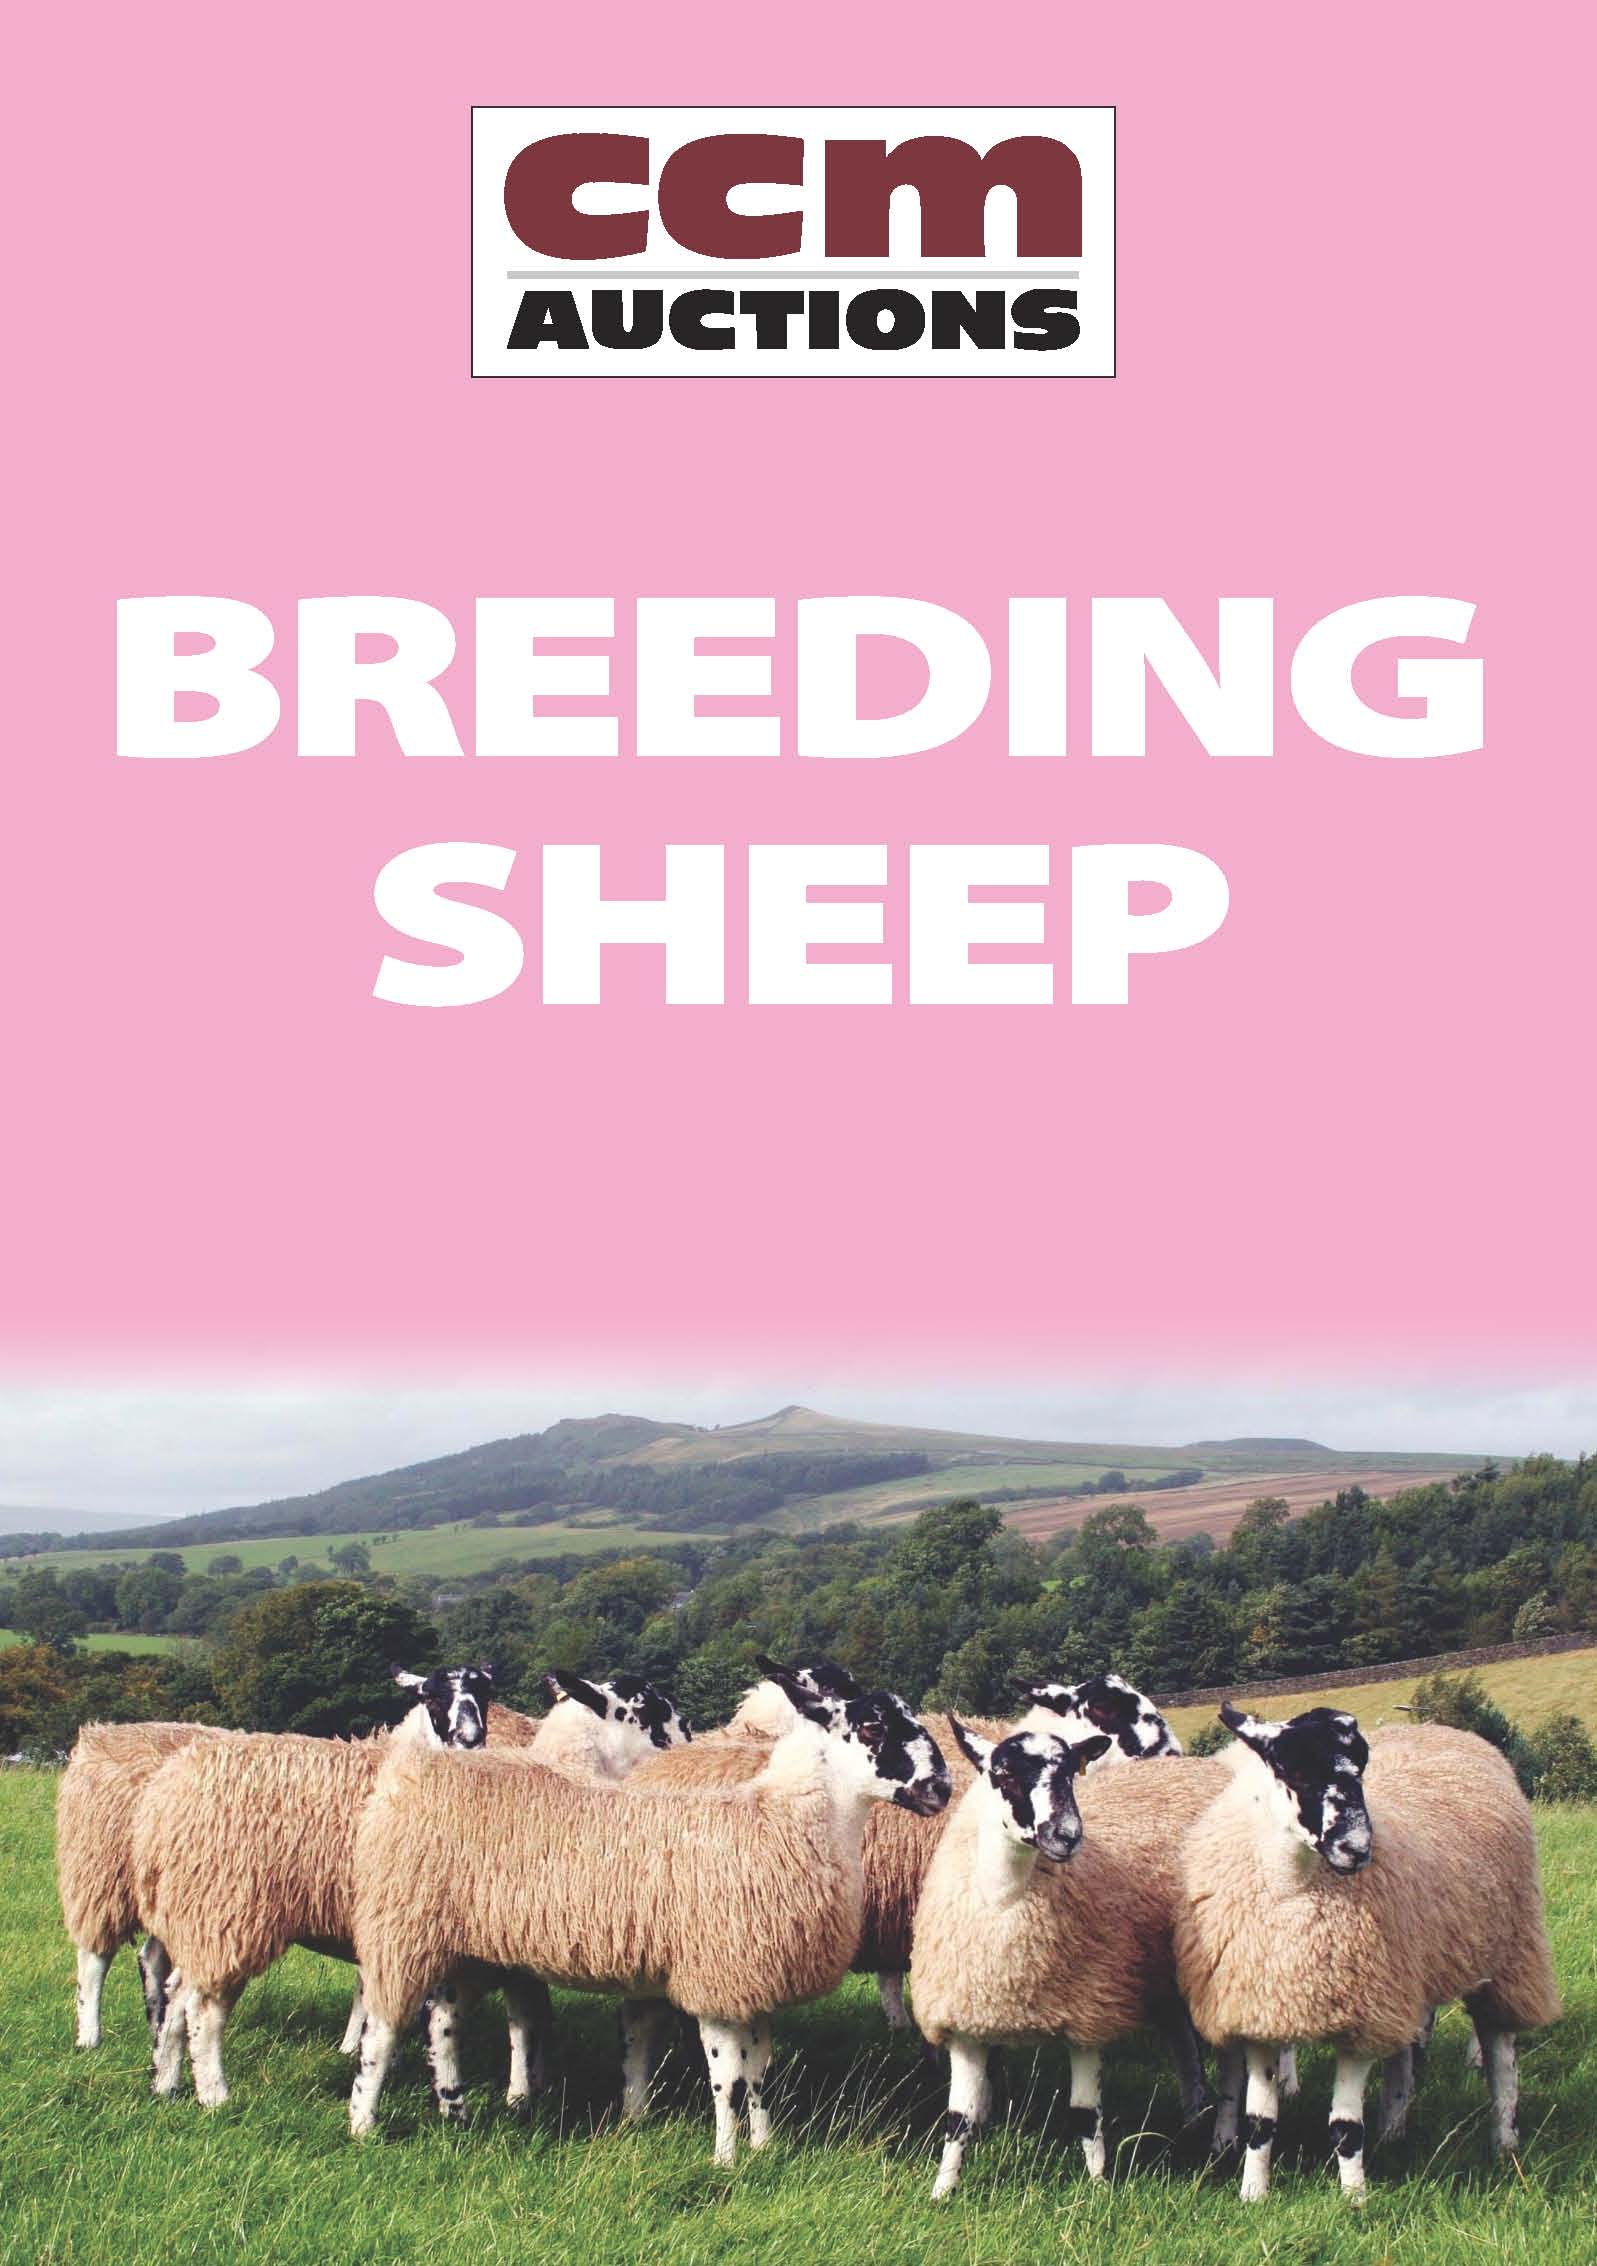 BREEDING SHEEP - FRIDAY 22ND AUGUST 2014